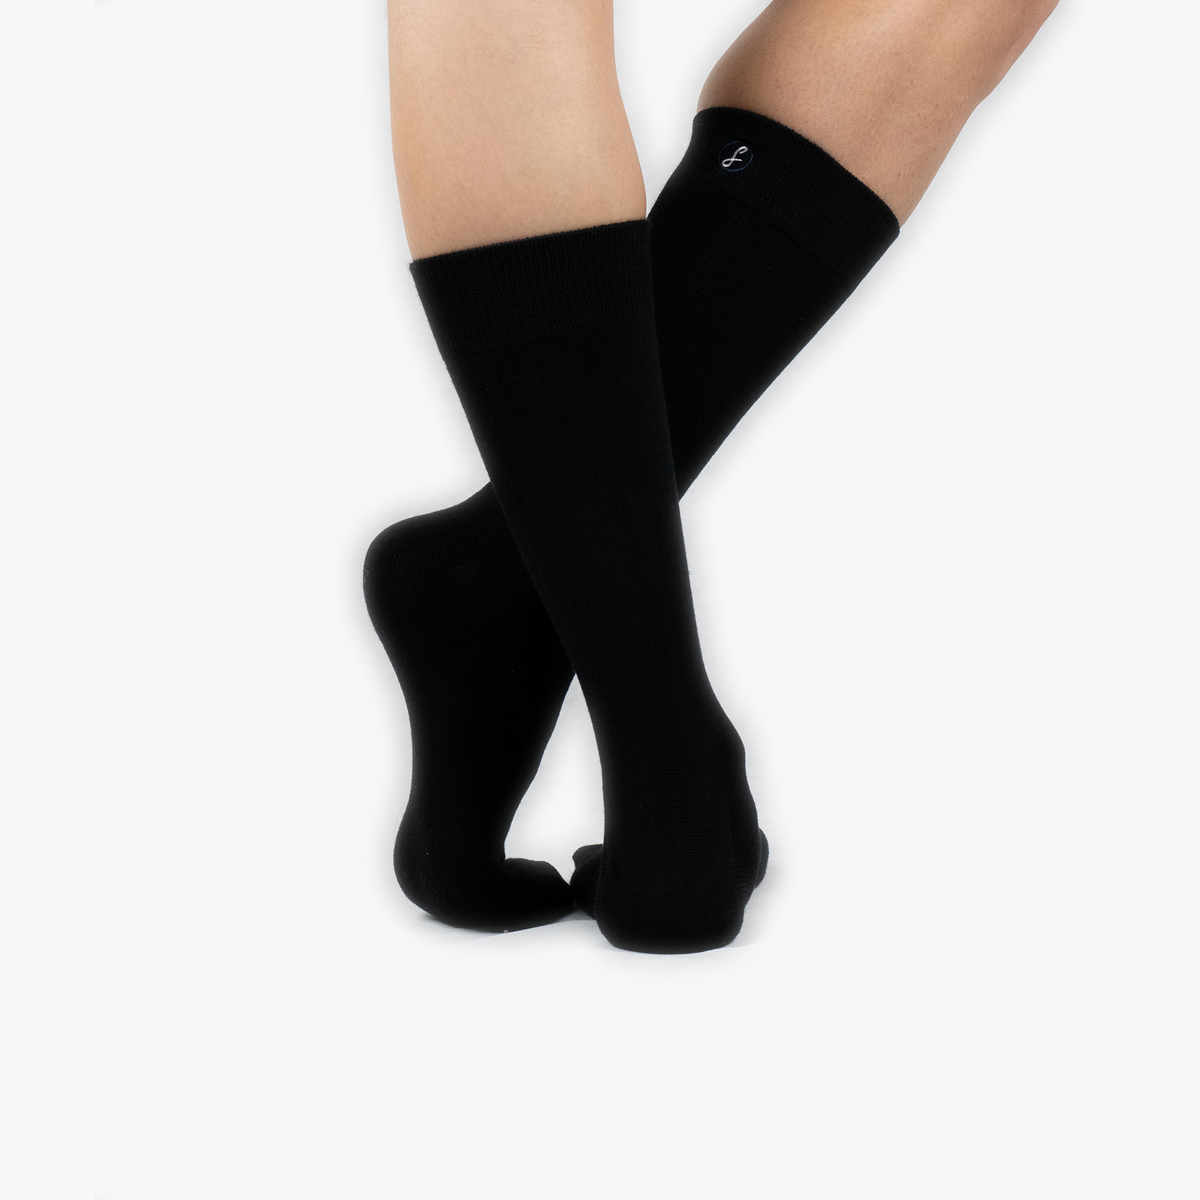 Black Bamboo Crew Length Swanky Socks 10 Pack - SwankySocks